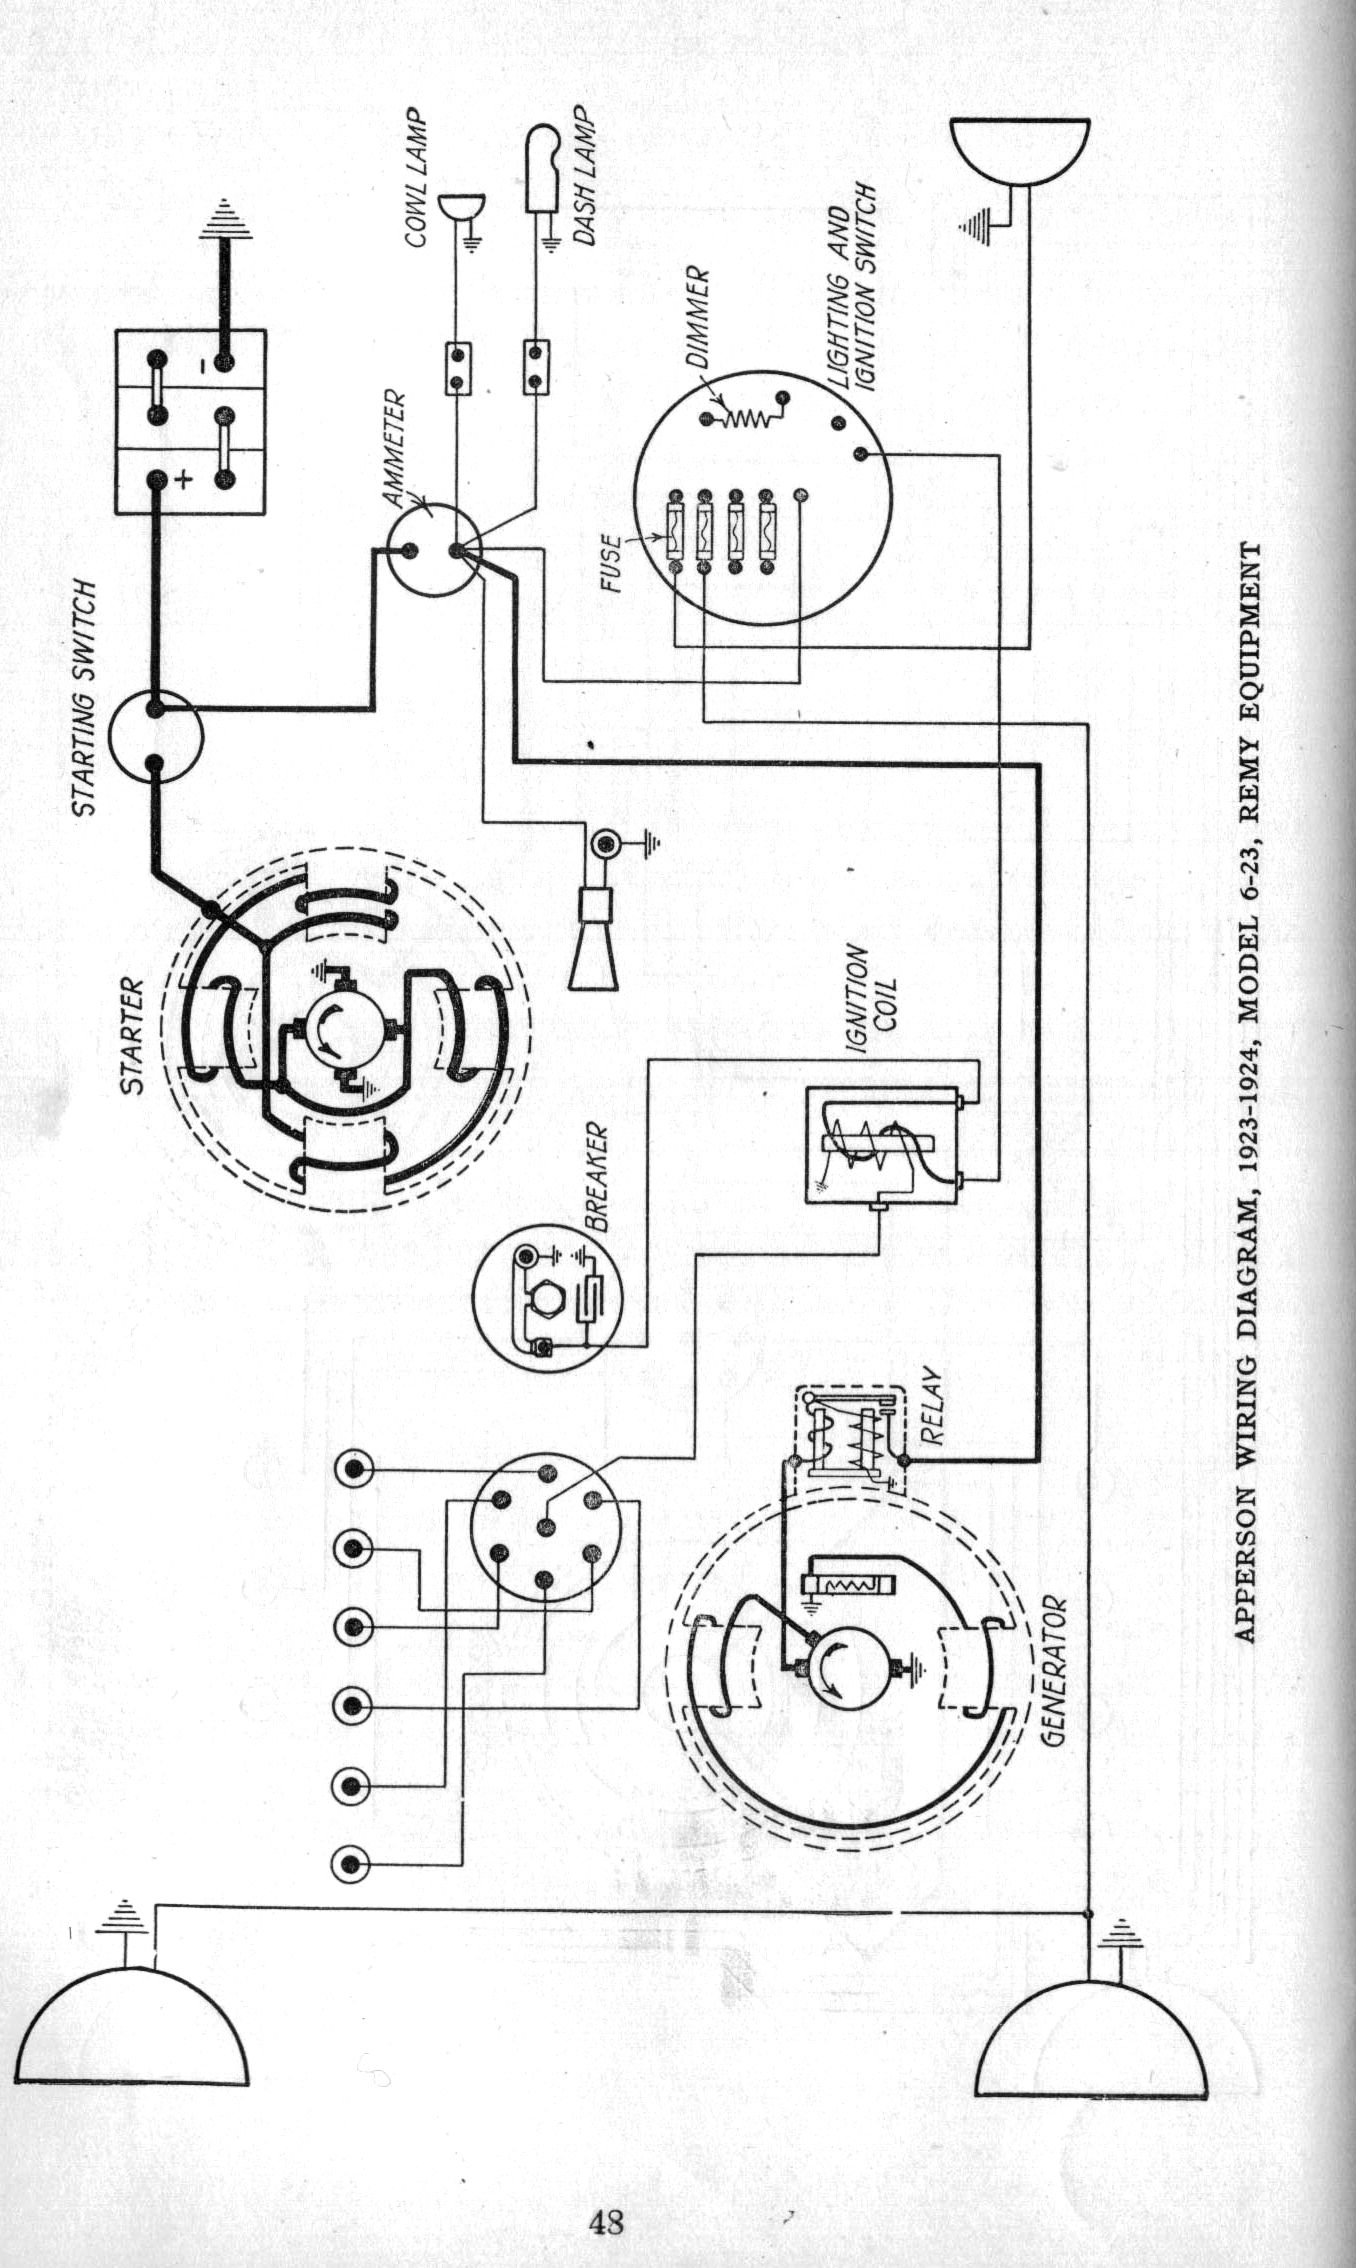 23 24Apperson Left early 1920's apperson and buick wiring diagrams the old car model a ford wiring diagram with cowl lamps at readyjetset.co